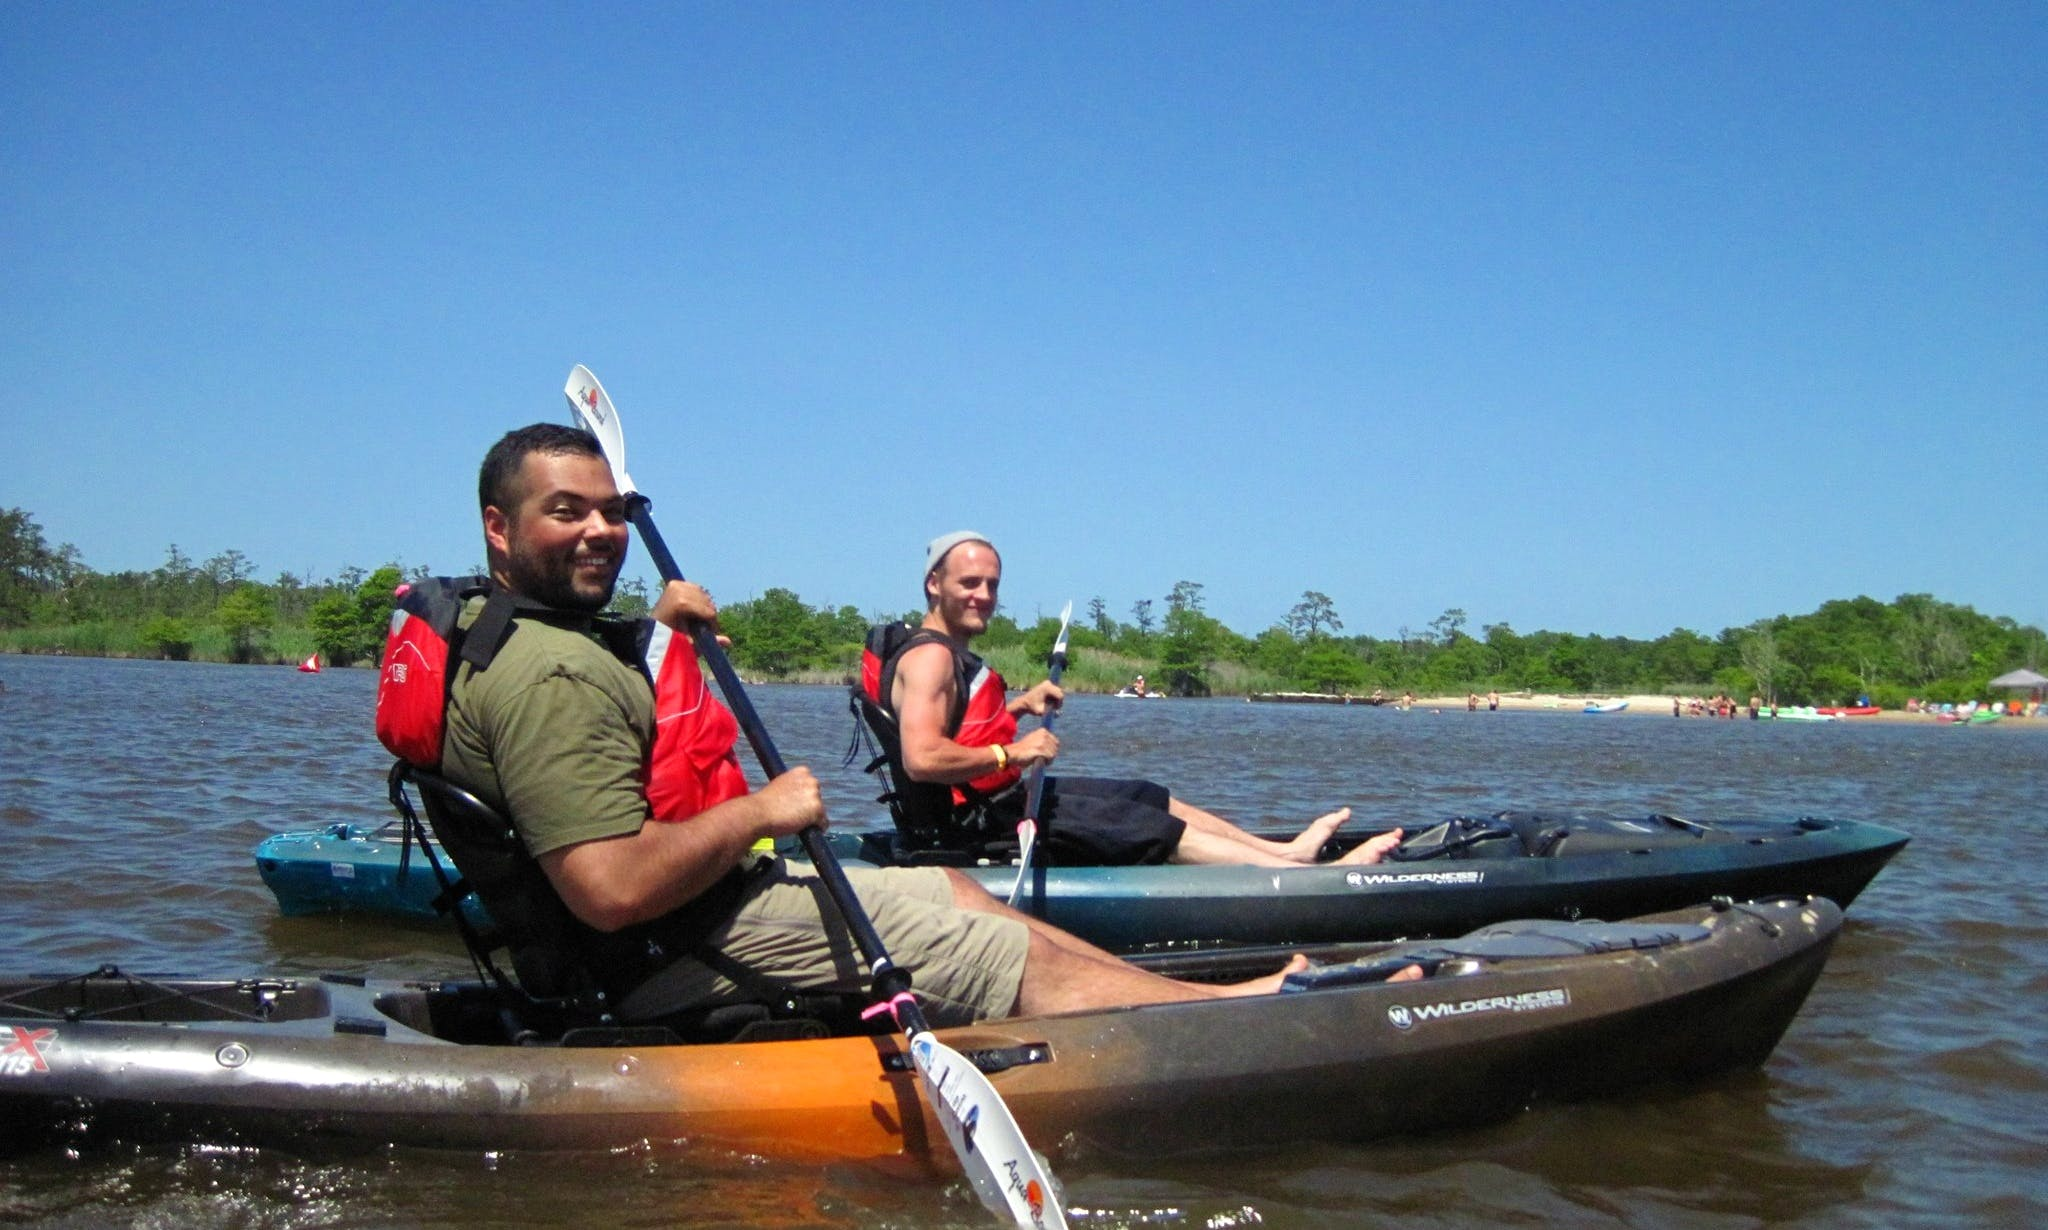 Kayak Rental in Virginia Beach